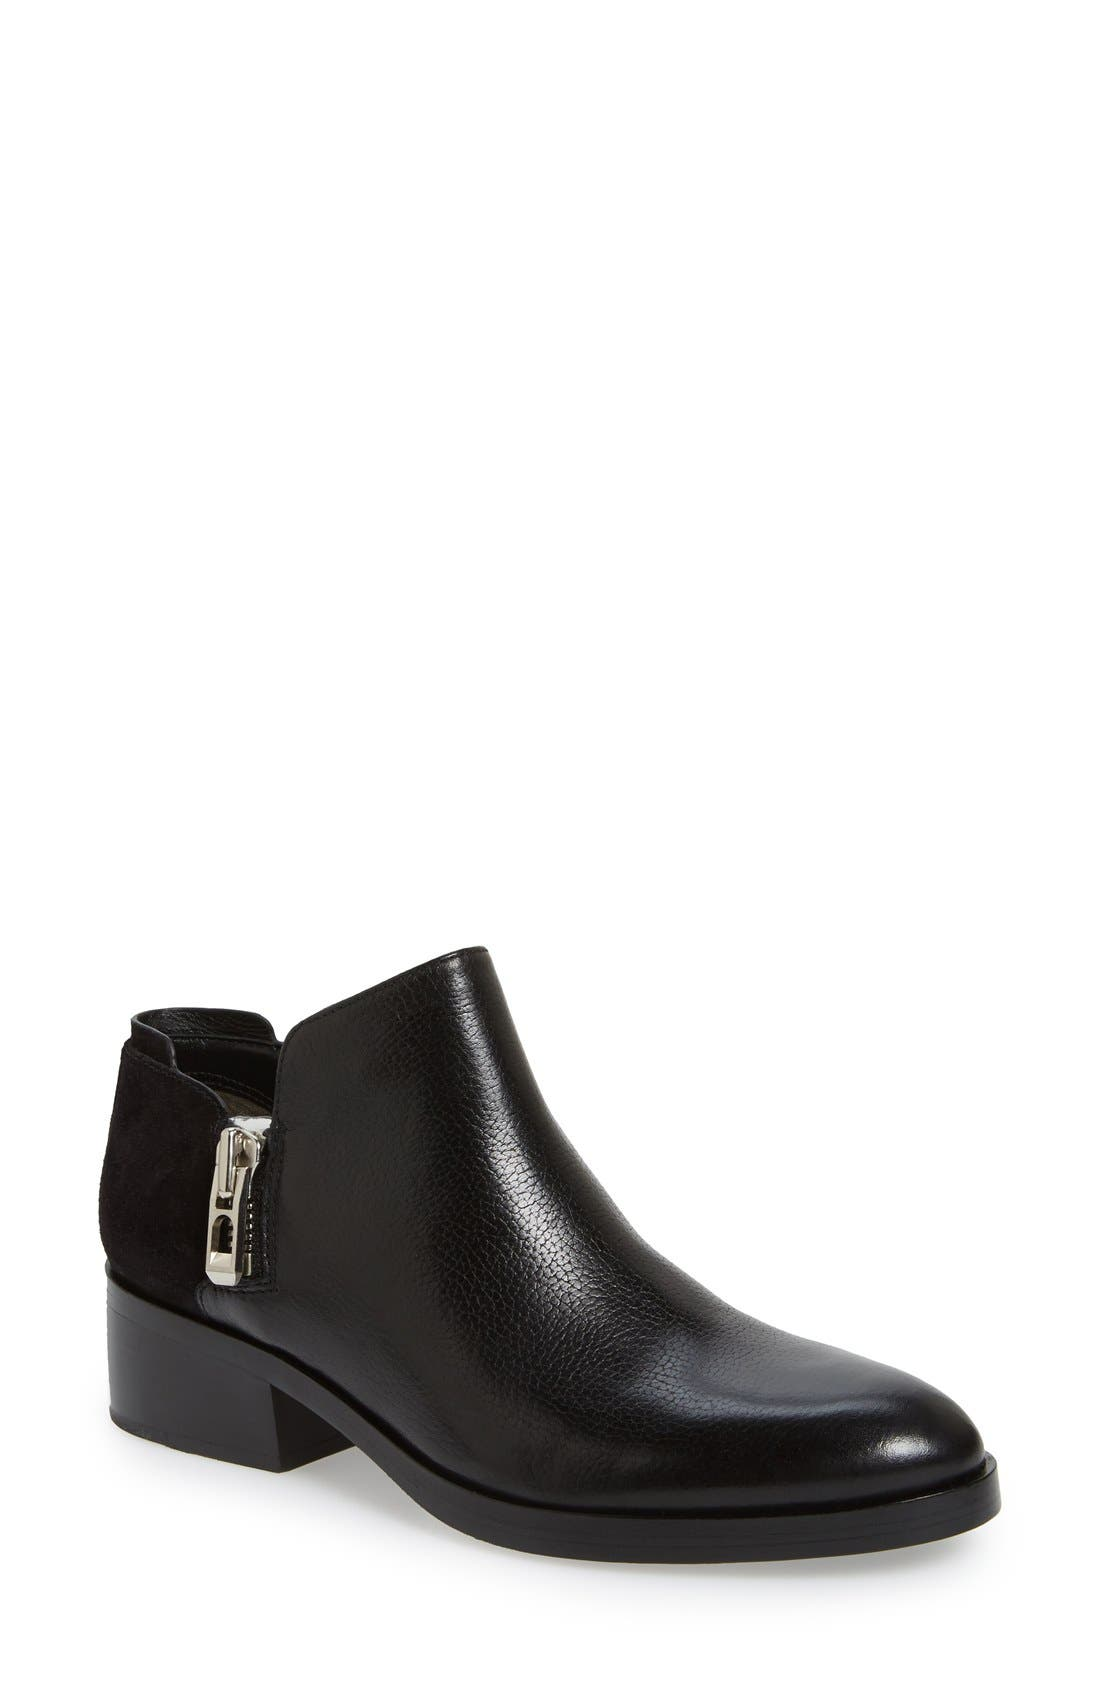 Alternate Image 1 Selected - 3.1 Phillip Lim Alexa Zip Ankle Bootie (Women)